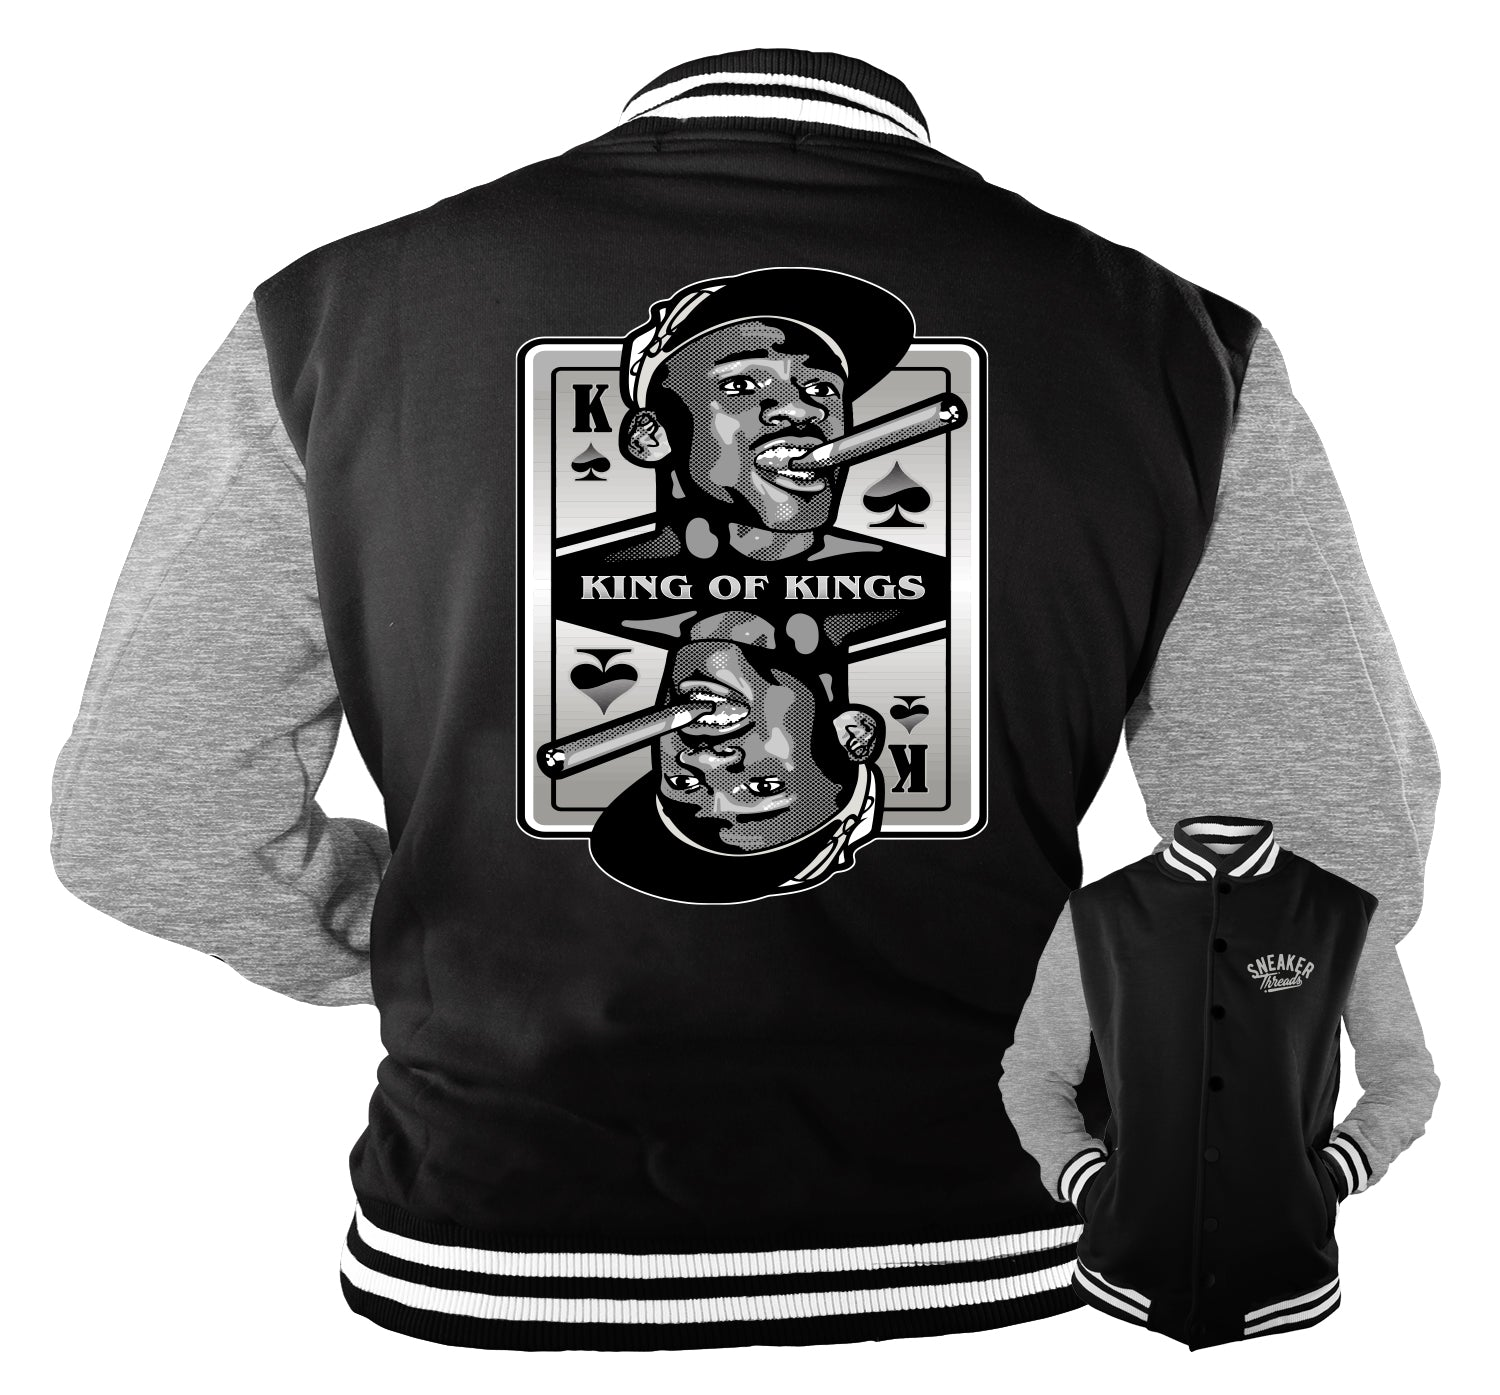 Jordan 5 Anthracite King Of Kings Jacket